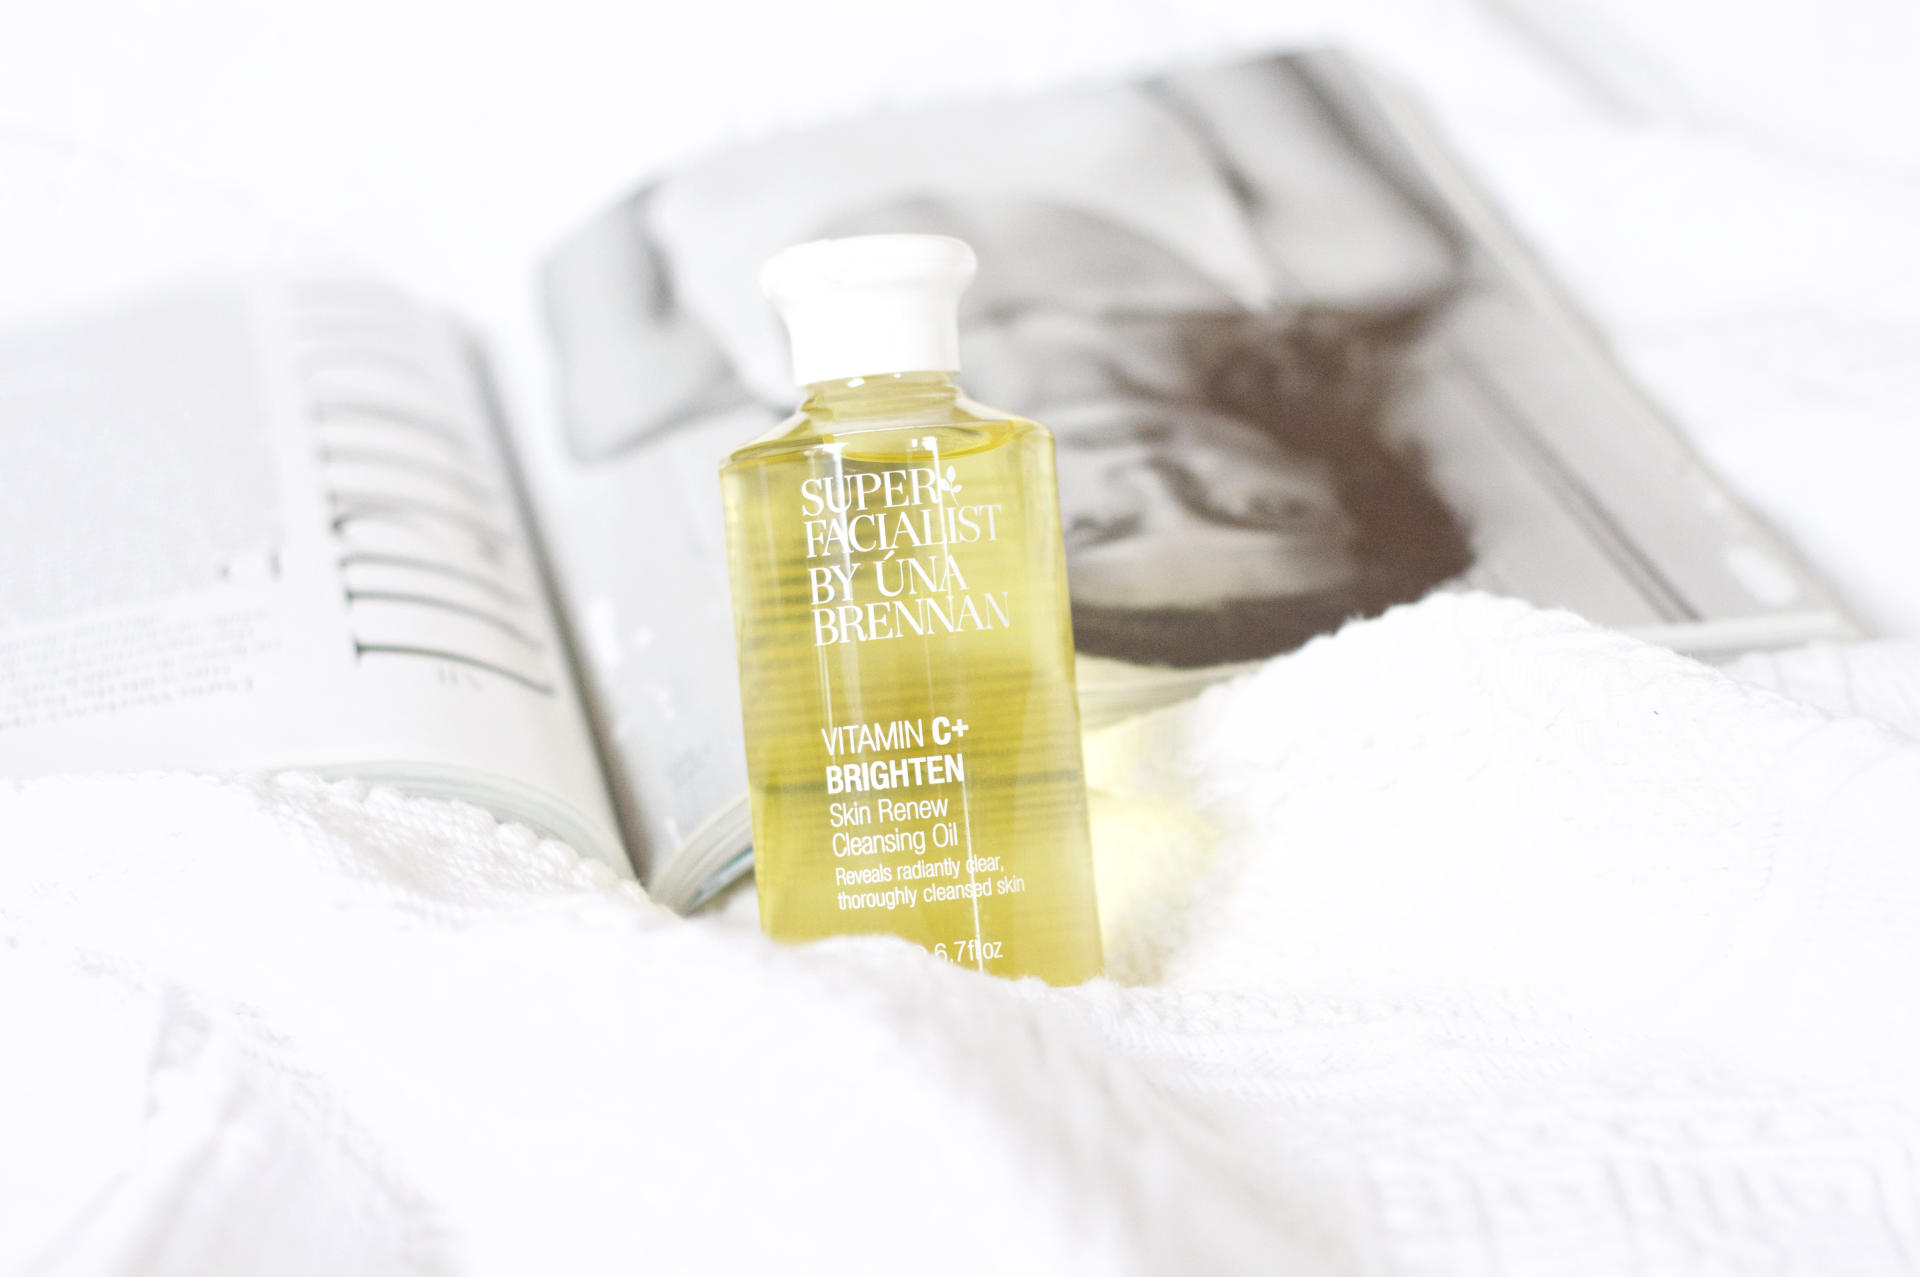 Made From Beauty The Una Brennan Superfacialist Vitamin C Skin Renew Cleansing Oil